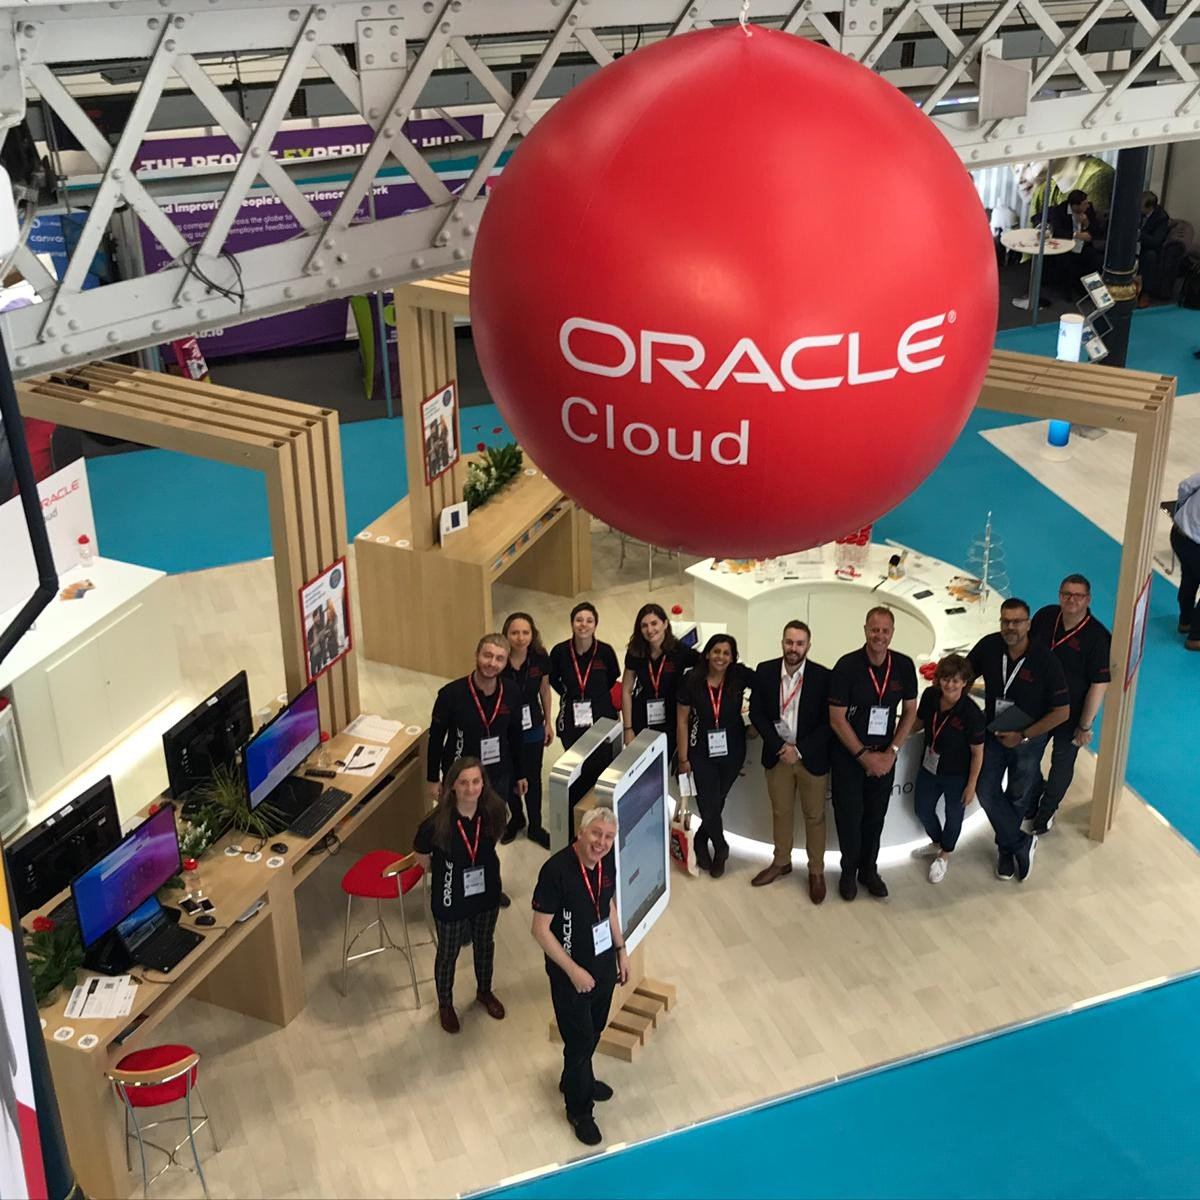 An amazing first day for @Oracle #HCM. Were looking forward to more @CIPD #FestivalofWork tomorrow: @TurningPointUK is speaking at the HR Technology Stage from 11:45-12:15 and @ZaraNanu from @gapsquare will be on the Future of Work Stage from 13:30-14:00. See you tomorrow!